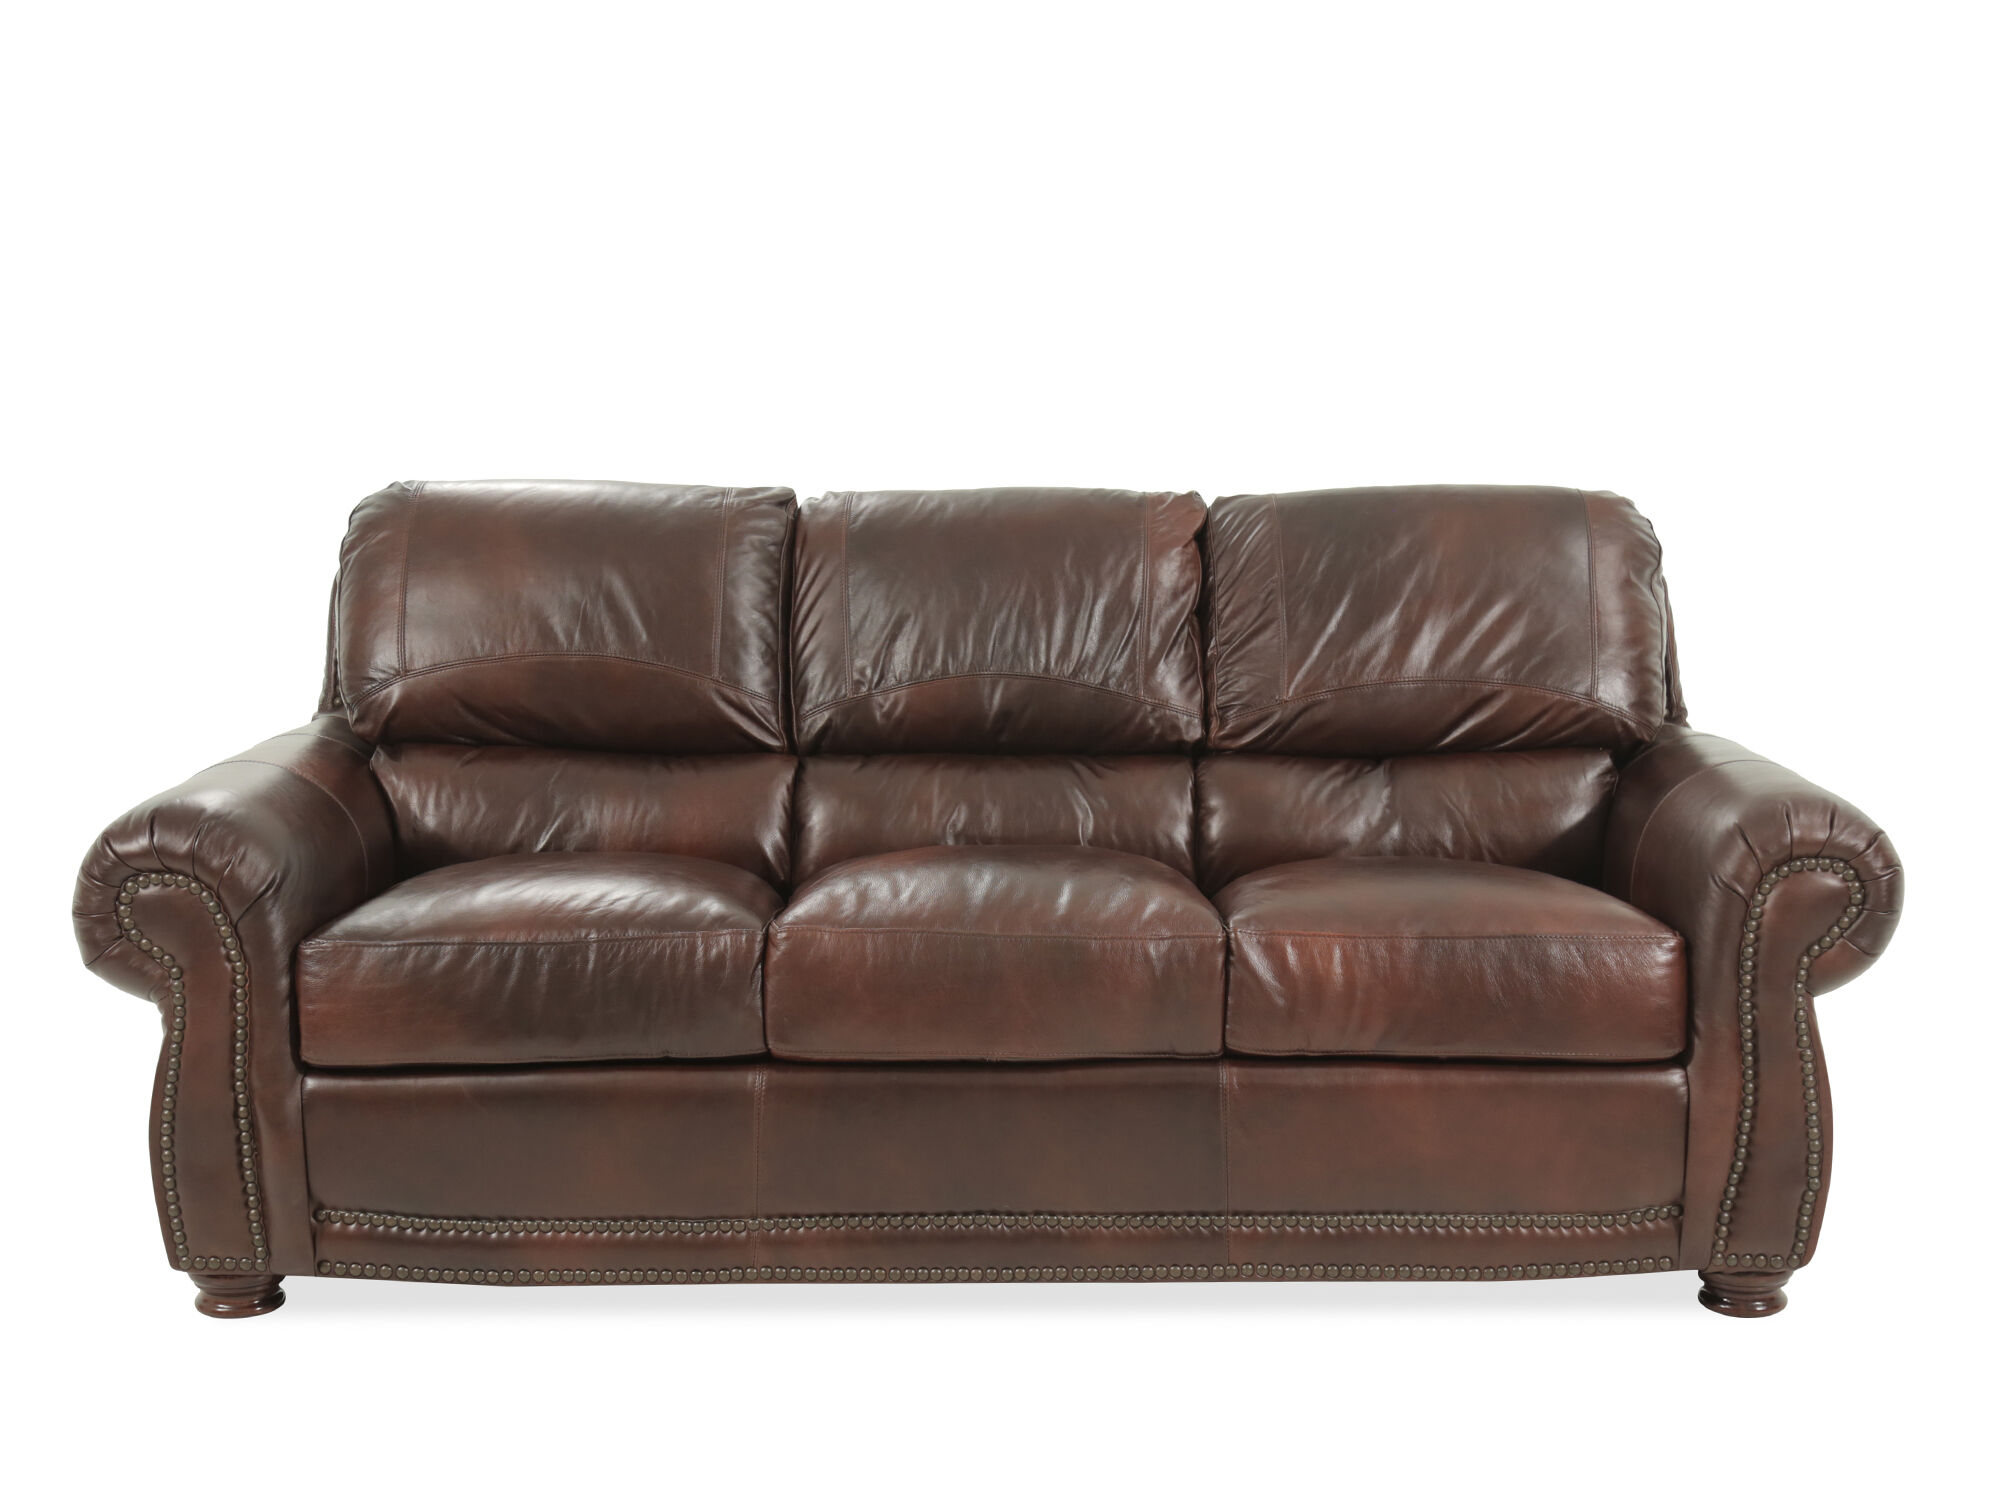 8 way hand tied sofa brands in canada laura ashley brown leather bed 85 amaretto mathis brothers furniture